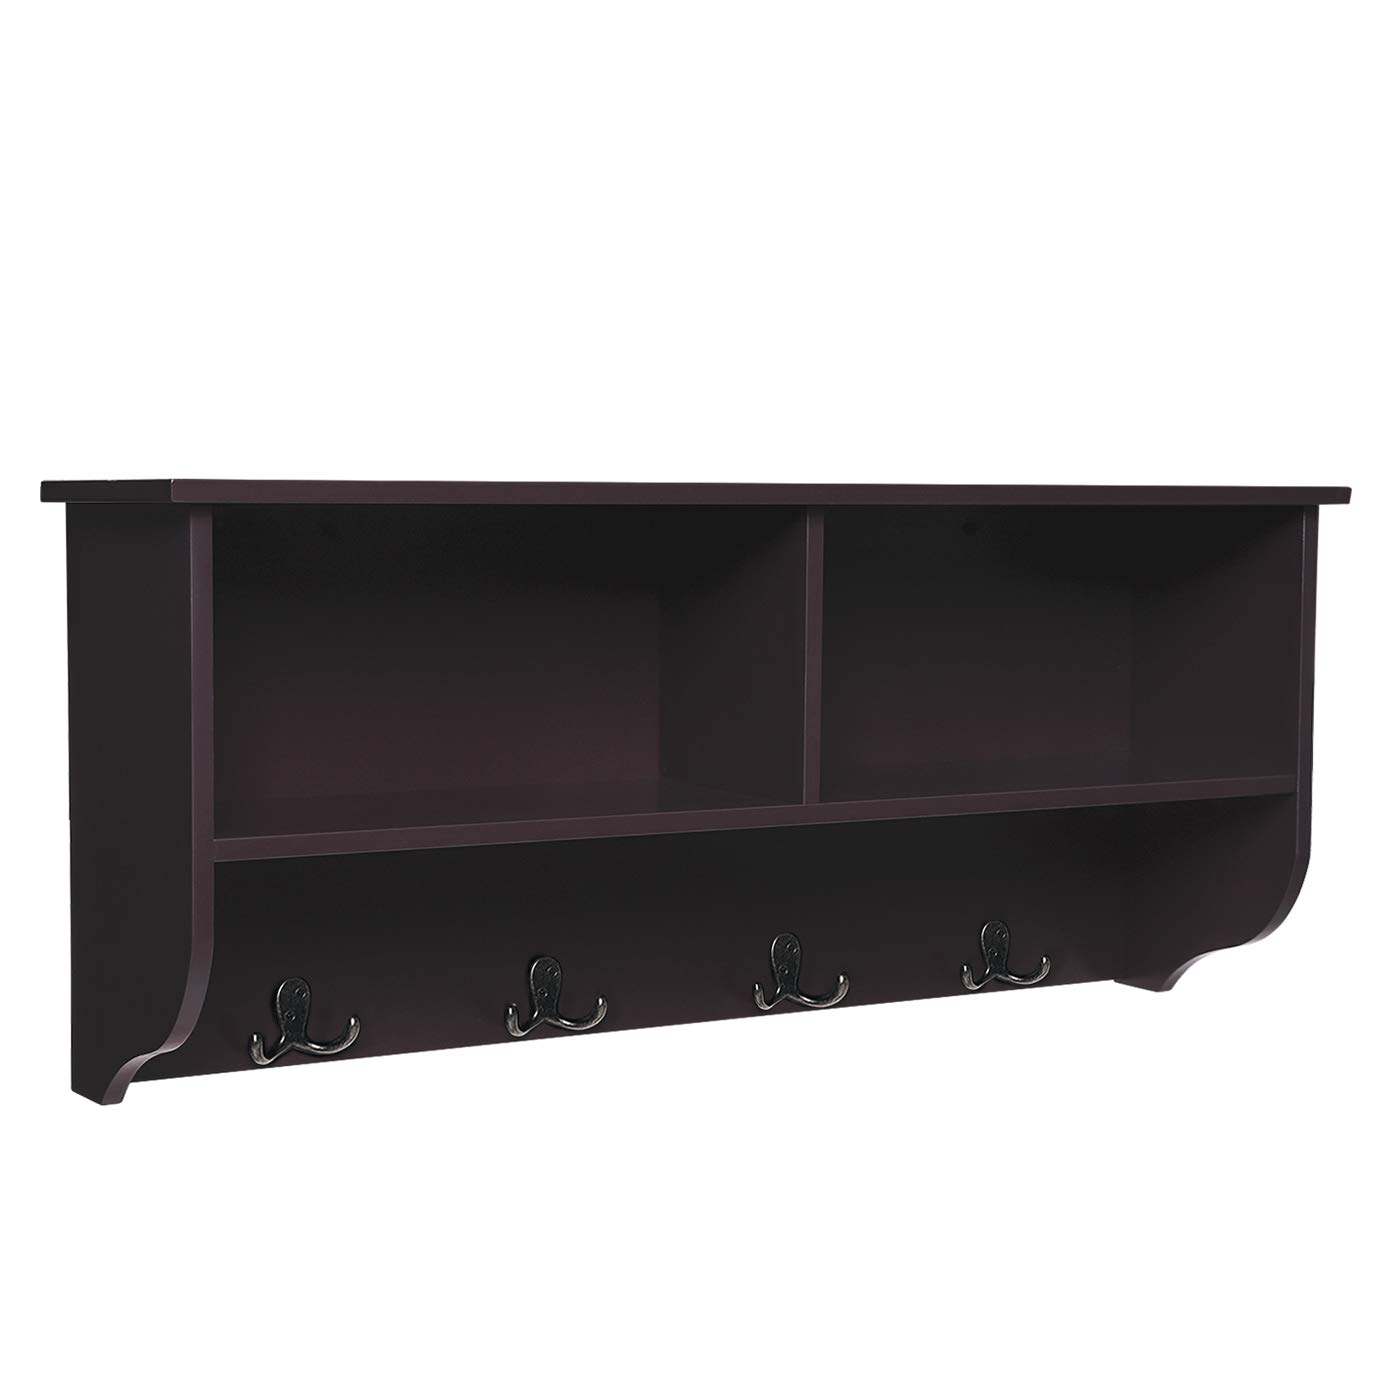 "SONGMICS Wooden Entryway Hanging Shelf and 4 Dual Coat Hooks, Space-Saving Storage Cubby, Espresso ULES02BR, 31.5""L x 7.9""W x 13.8""H"